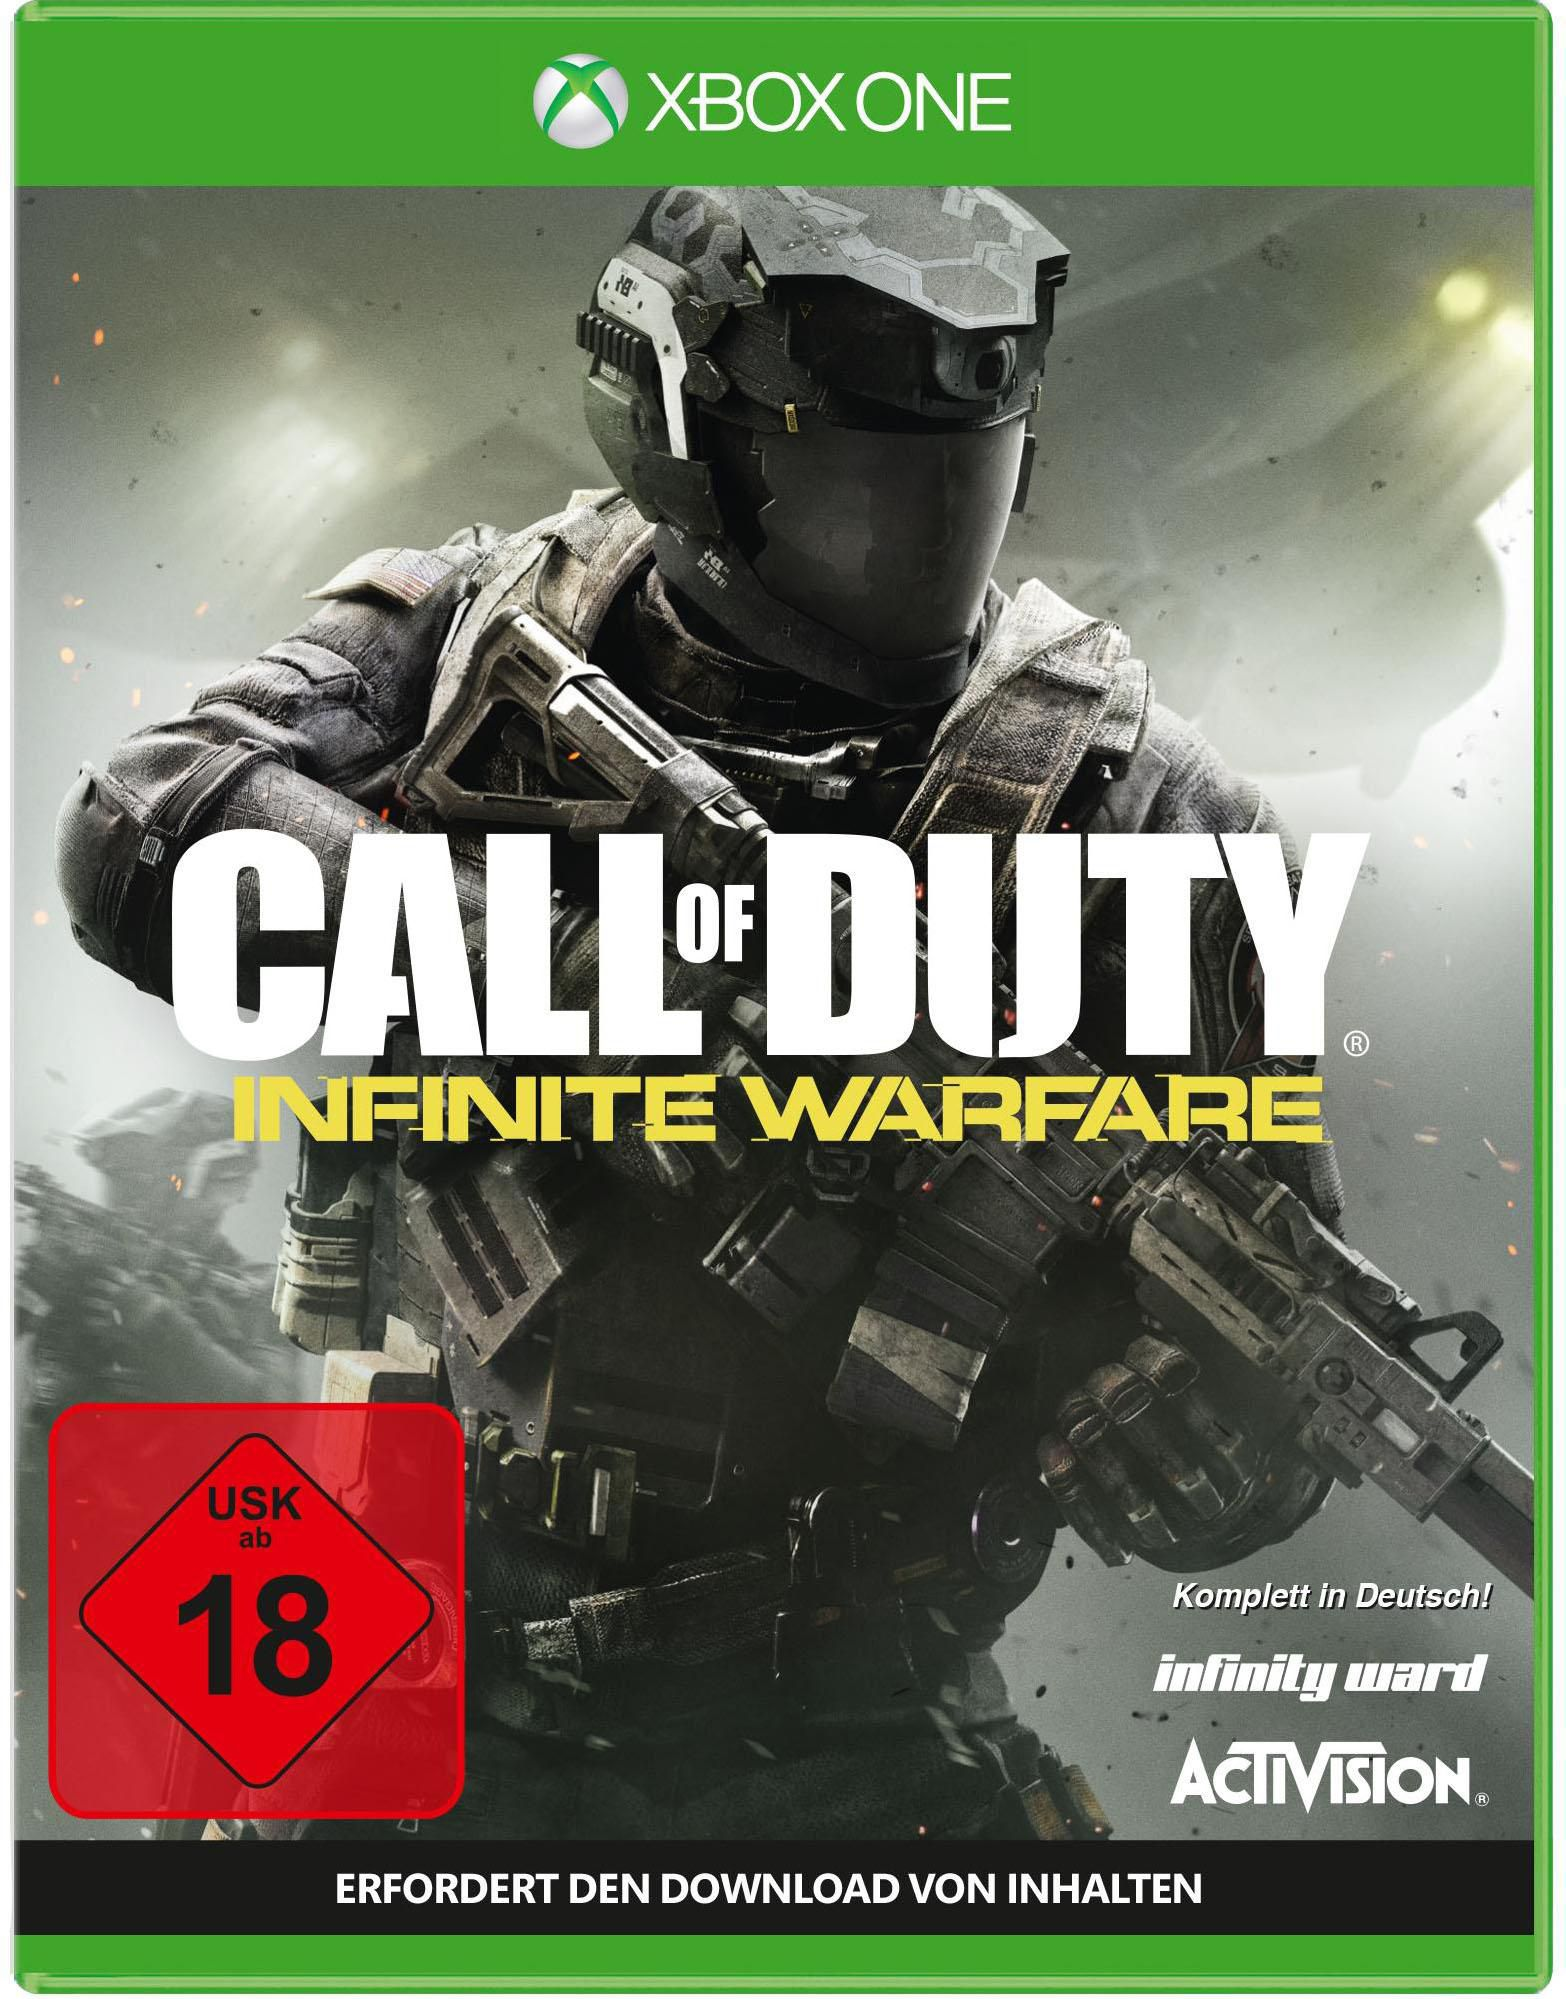 ACTIVISION Call of Duty: Infinite Warfare Xbox One